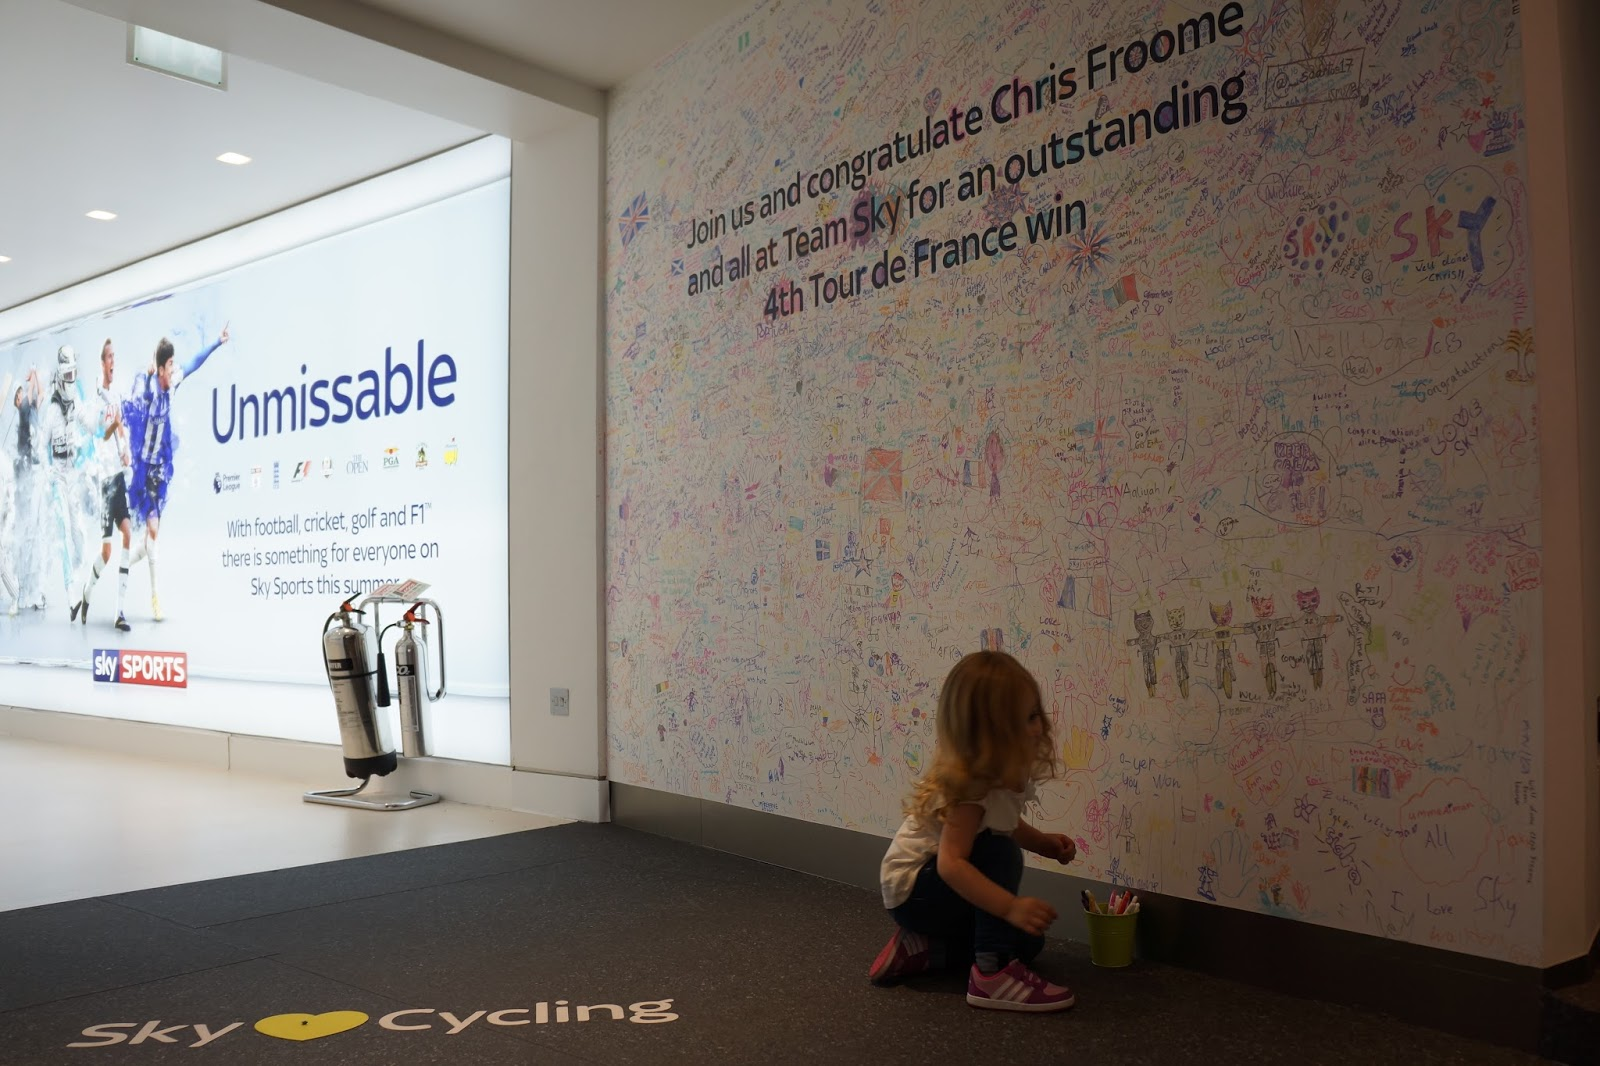 a wall with congratulations and drawings for chris foome for winning tour de france